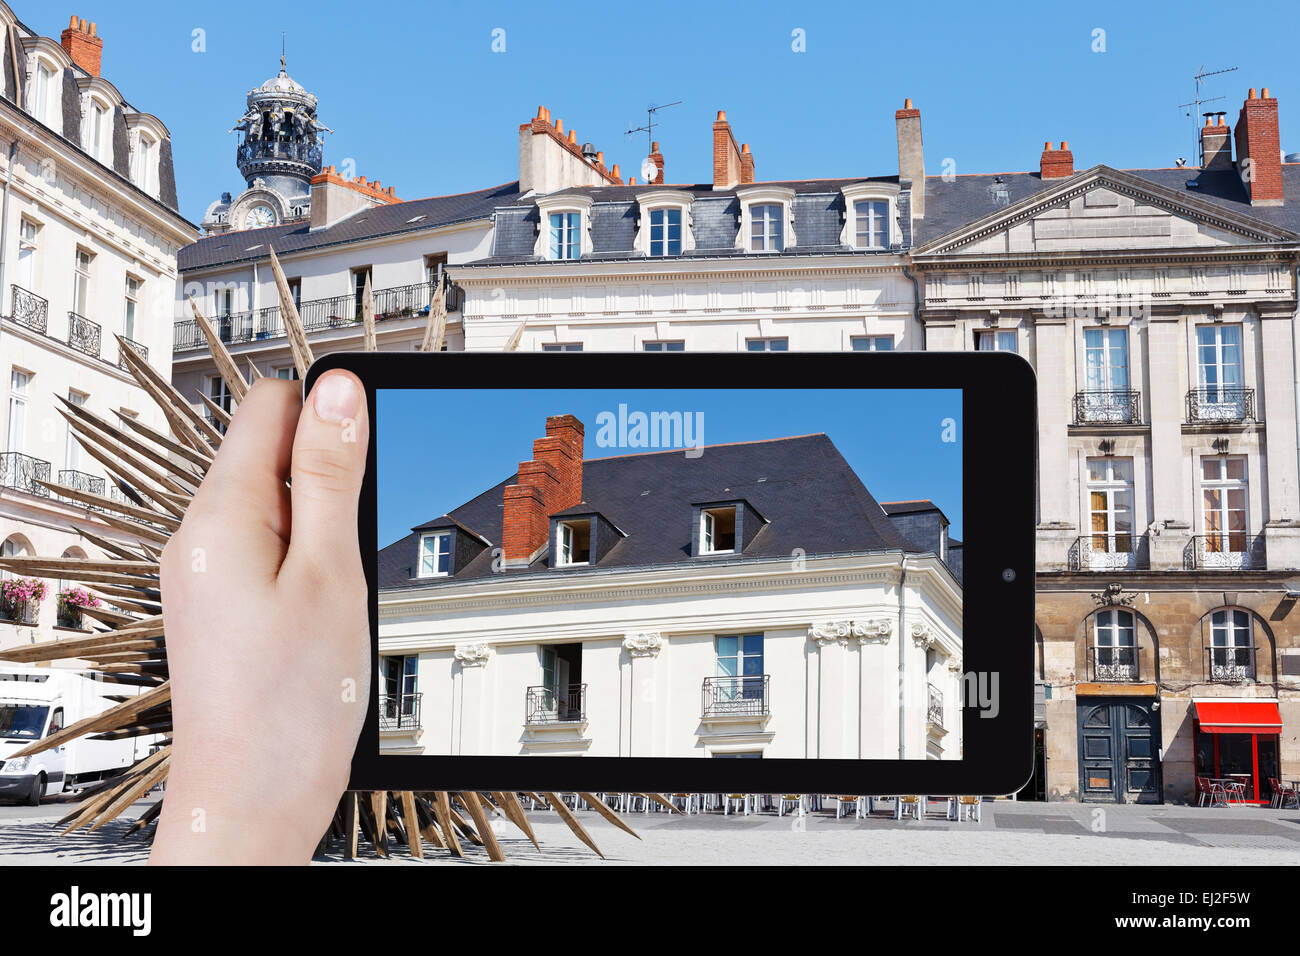 Travel Concept Tourist Takes Picture Of Facade Of Old Urban House Stock Photo Alamy